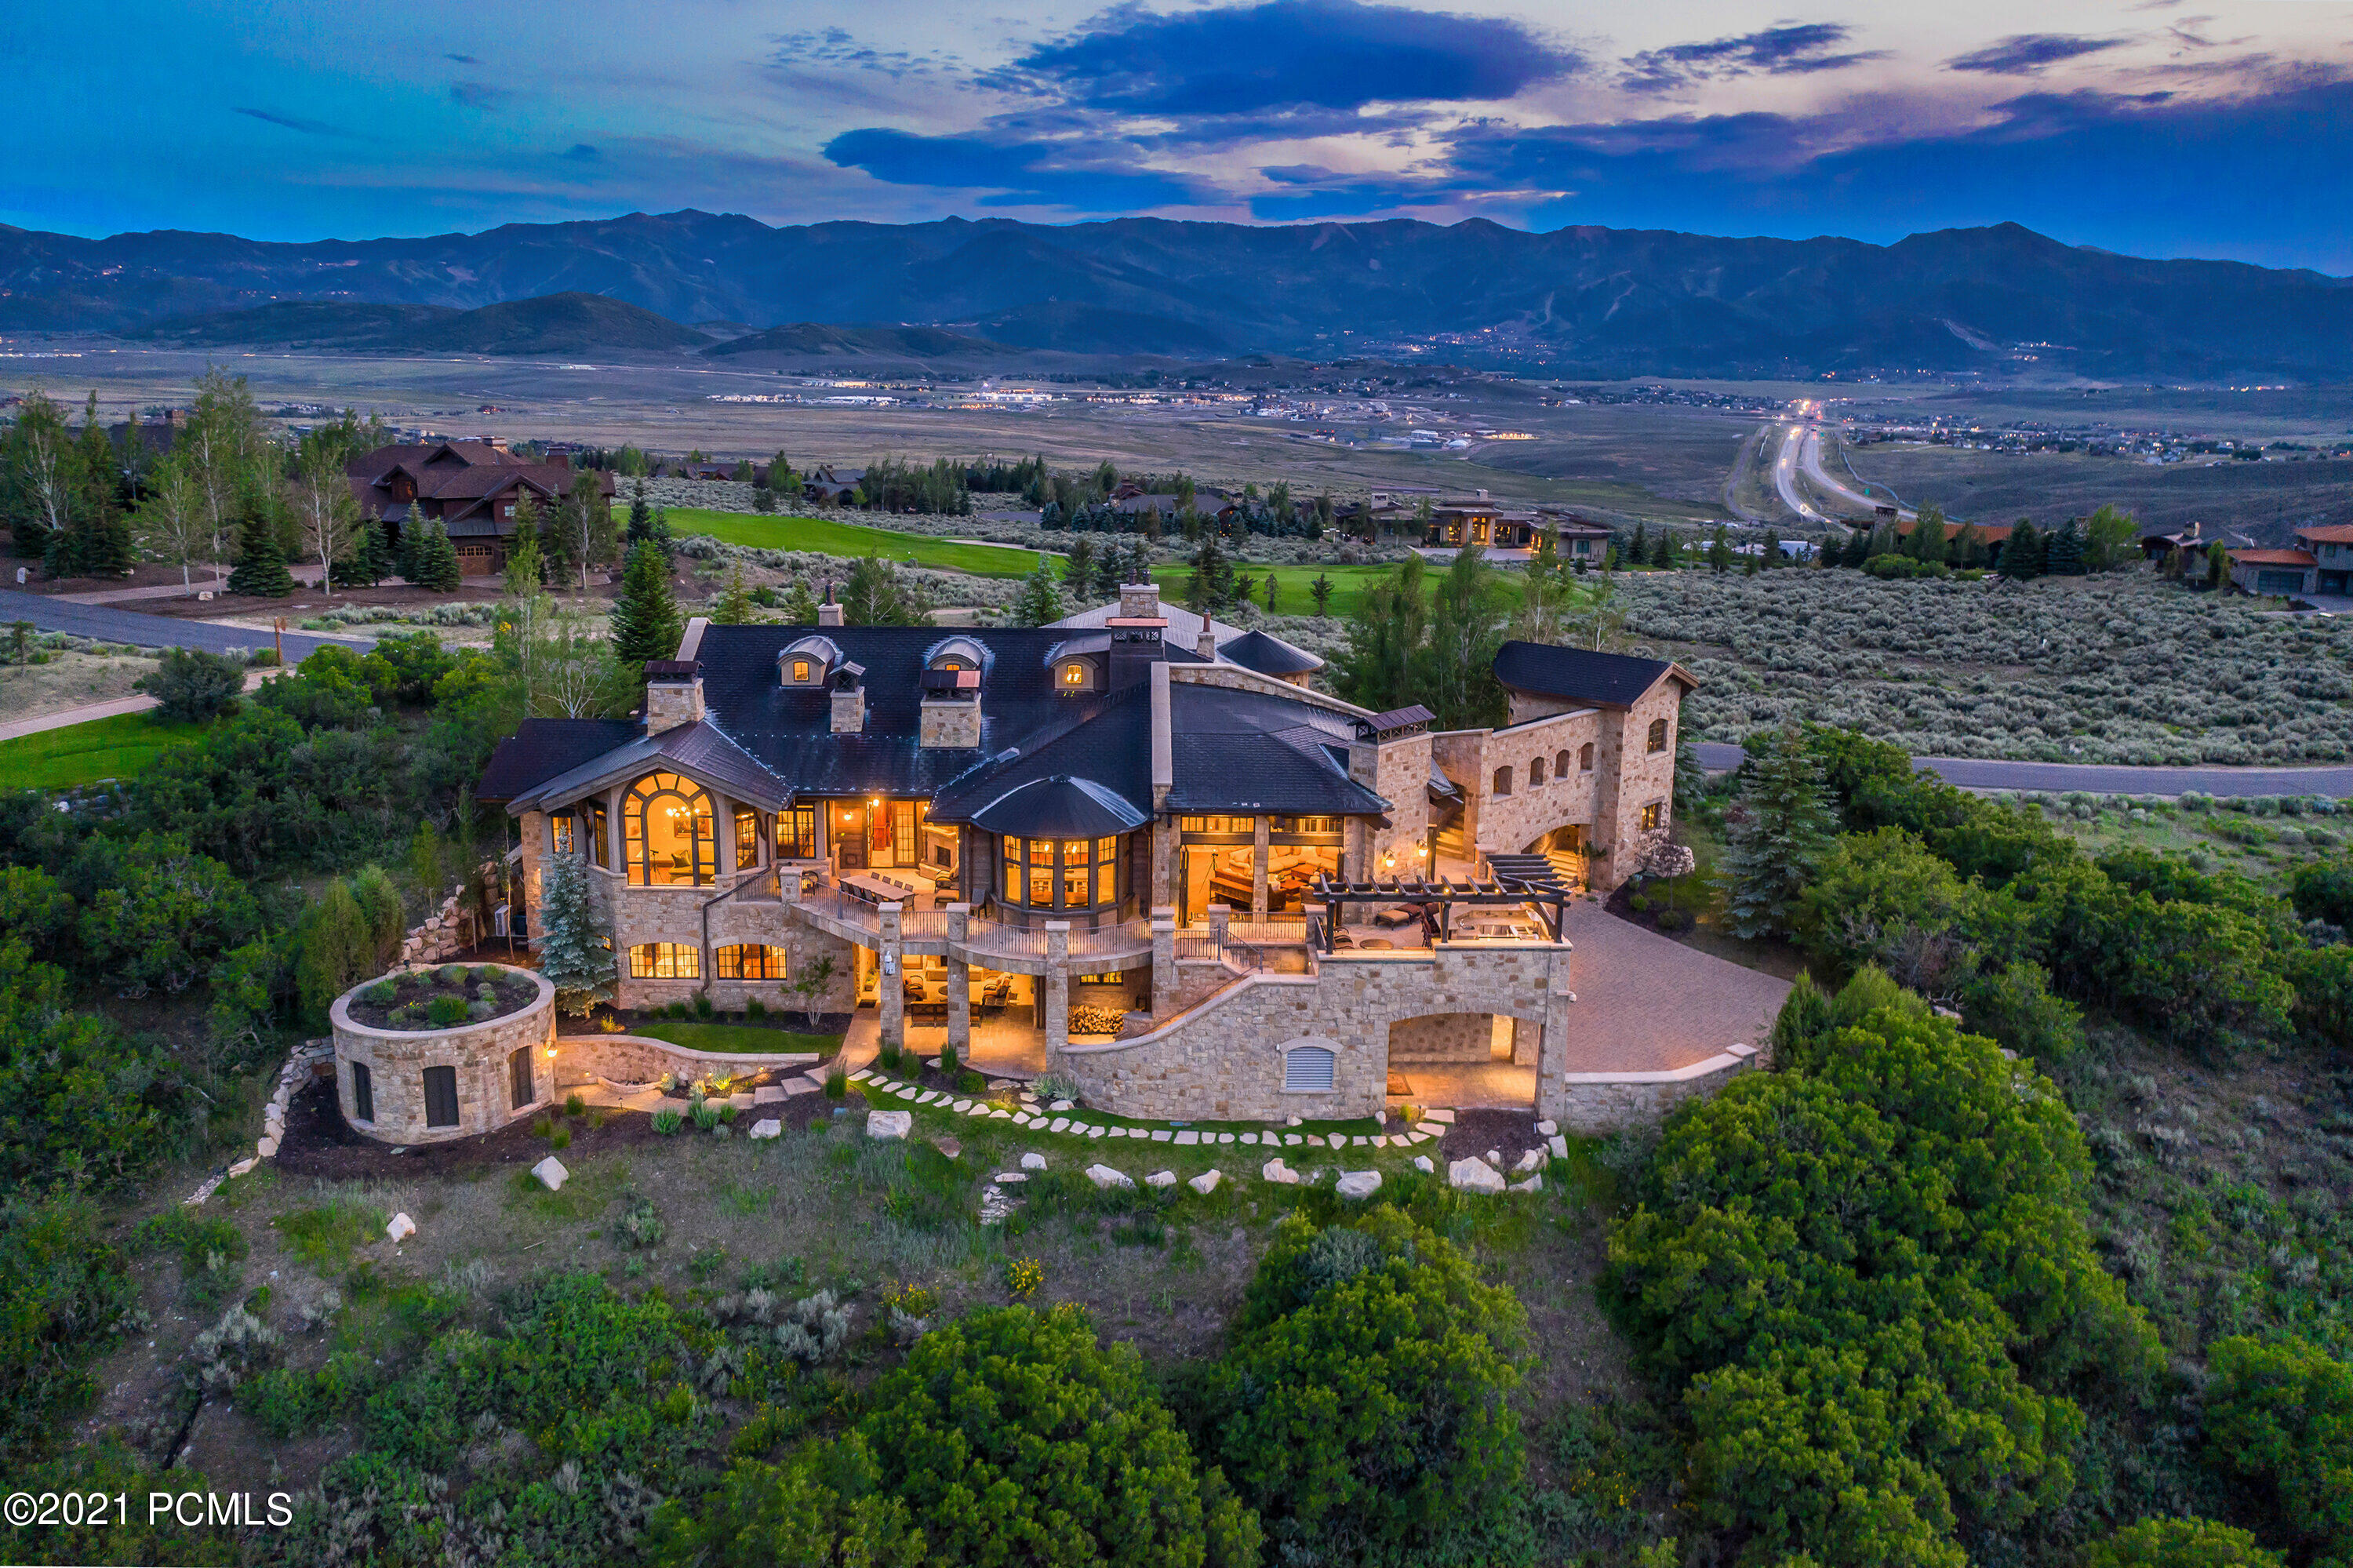 Villa del Alce - This European estate is extraordinary in every way. Situated on an epic panoramic view lot overlooking a canyon known for migrating elk in the premier gated community of Promontory Ranch Club in Park City, Utah. This inviting home was designed and built seamlessly for family, work or play, with a thoughtful layout promoting a natural flow and true year-round indoor-outdoor living. No expense has been spared, no detail overlooked, featuring handcrafted Biblical stone imported from Israel, 200-year old beams reclaimed from Midwestern barns, Italian stoned ceiling painstakingly hand cut piece by piece with hand carved wood throughout. Enjoy intimate moments with family and friends or entertain up to 100 guests easily with an open authentic European kitchen including an Italian wood-burning pizza oven and complete with a La Cornue range found in the best restaurants in Paris. Other amenities are fully connected smart system, golf simulator, a grotto with 12-person hot tub, waterfall, Kaleidoscope movie system, guest home, and year-round usable outdoor dining area. Promontory Ranch Club is a 6,300-acre resort lifestyle community that offers entertainment for all 4 seasons, featuring 2 golf courses, ski cabins, spa, multiple world class restaurants, private beach area, tennis etc. 15 minutes to historic Park City and Deer Valley, 35 minutes to Salt Lake City International Airport.